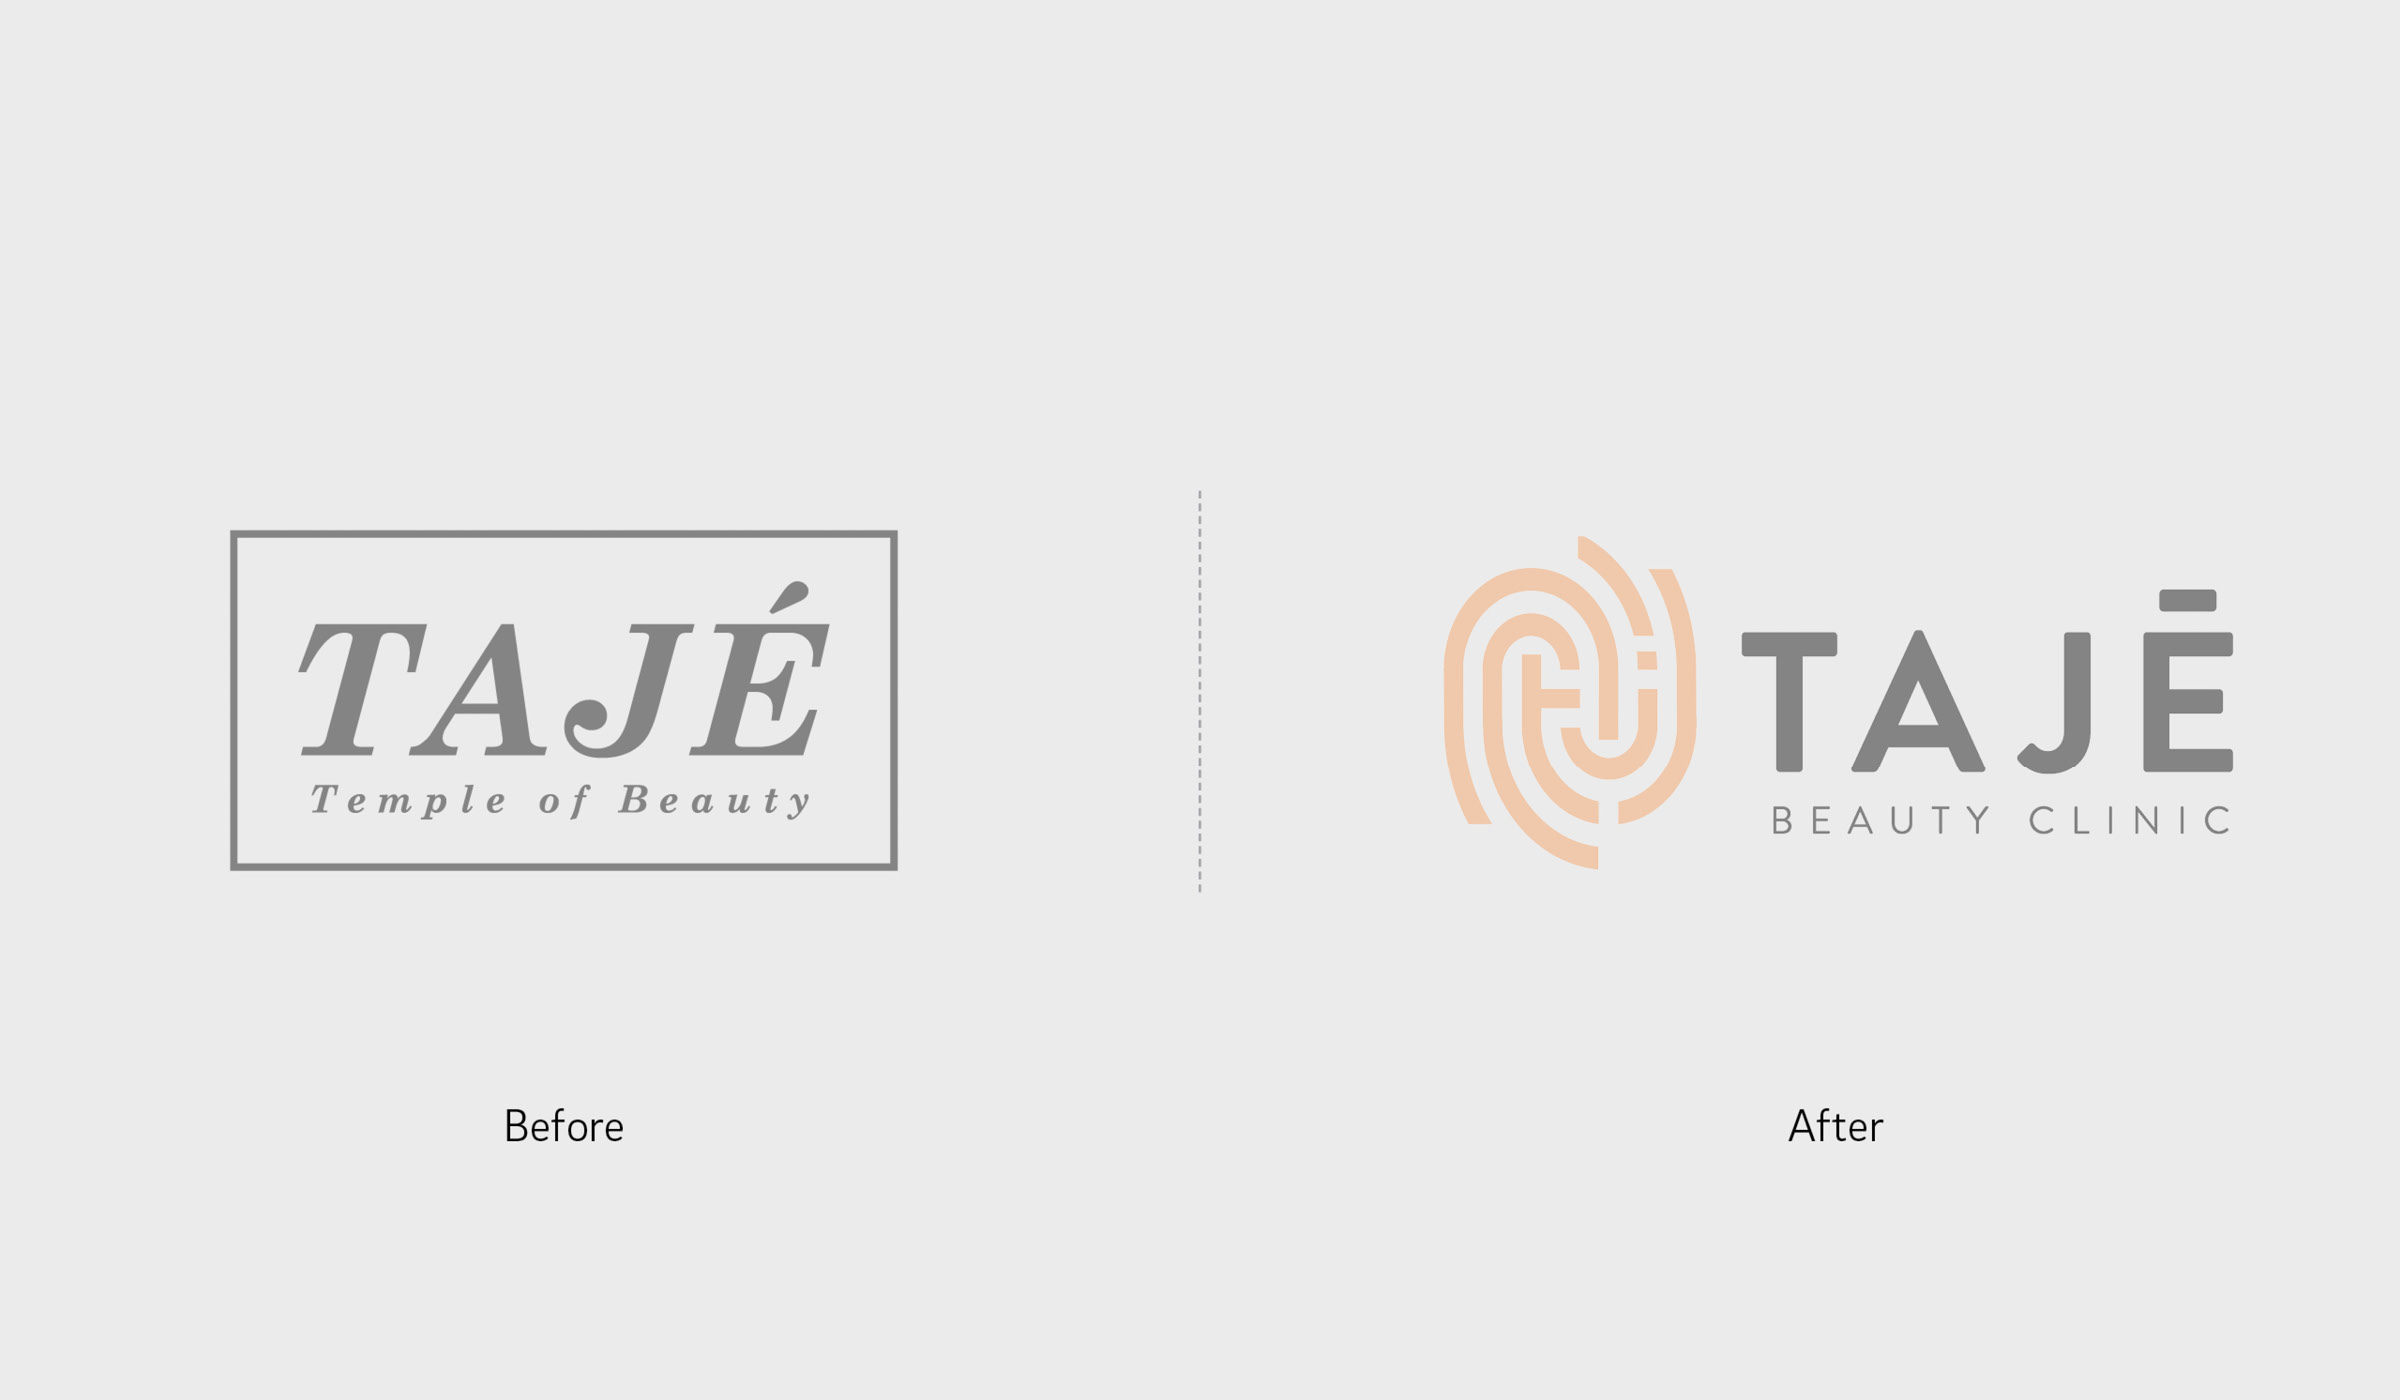 logo design before and after